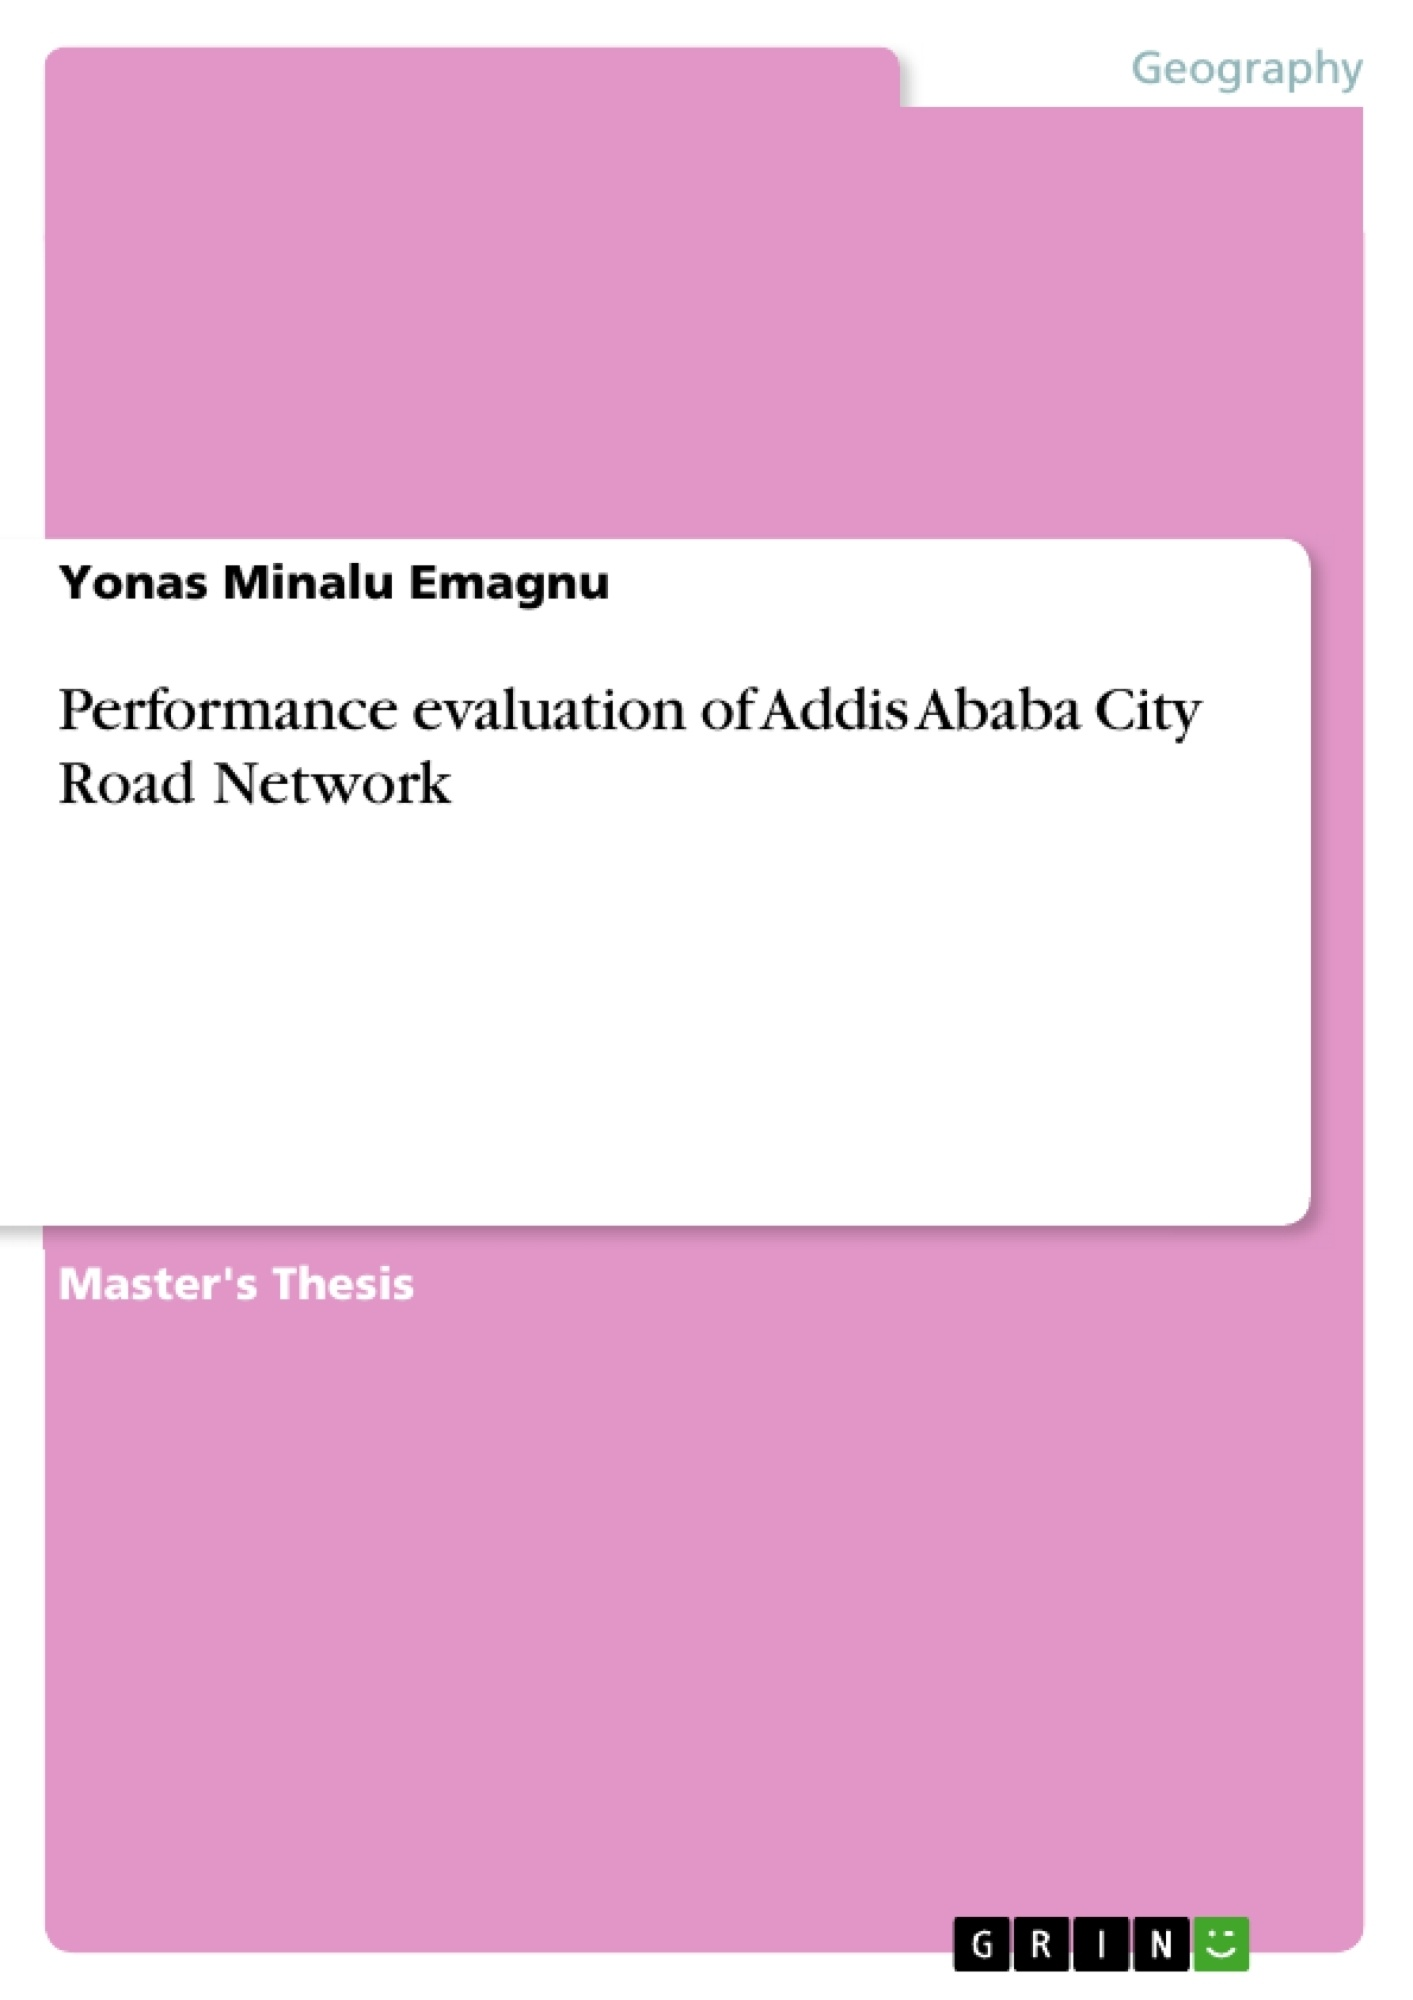 GRIN - Performance evaluation of Addis Ababa City Road Network